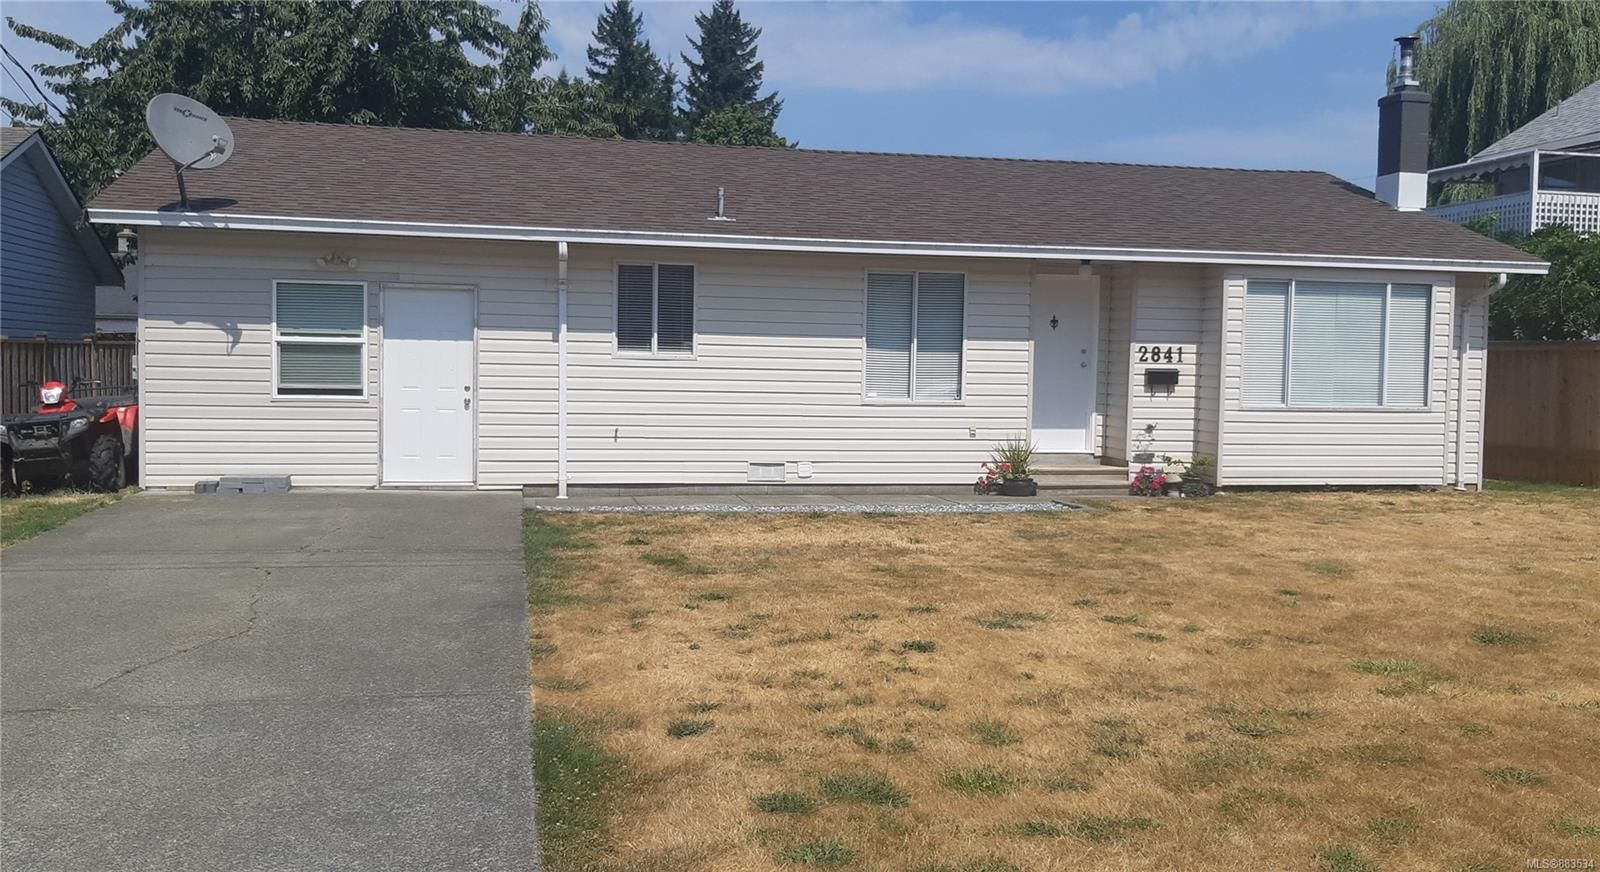 Main Photo: 2841 Fairmile Rd in : CR Willow Point House for sale (Campbell River)  : MLS®# 883534